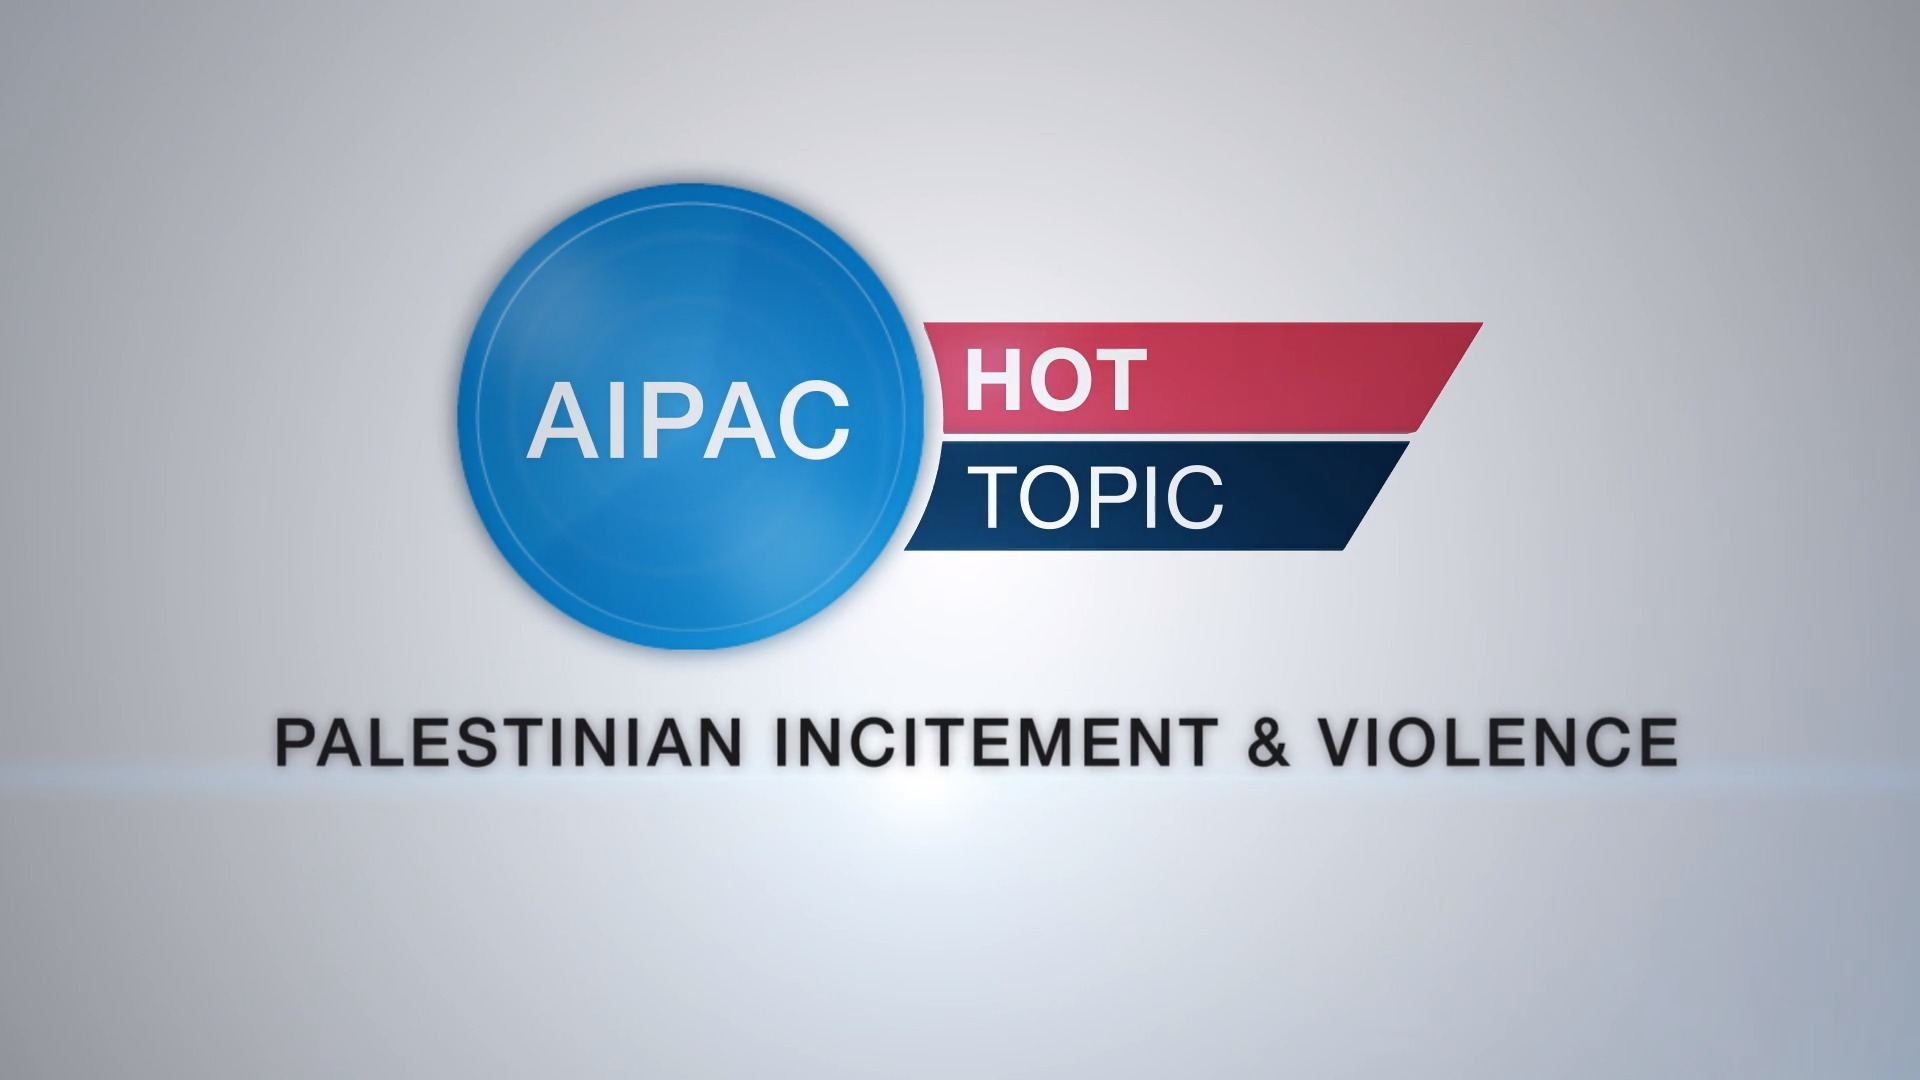 AIPAC Hot Topic - Palestinian Incitement & Violence